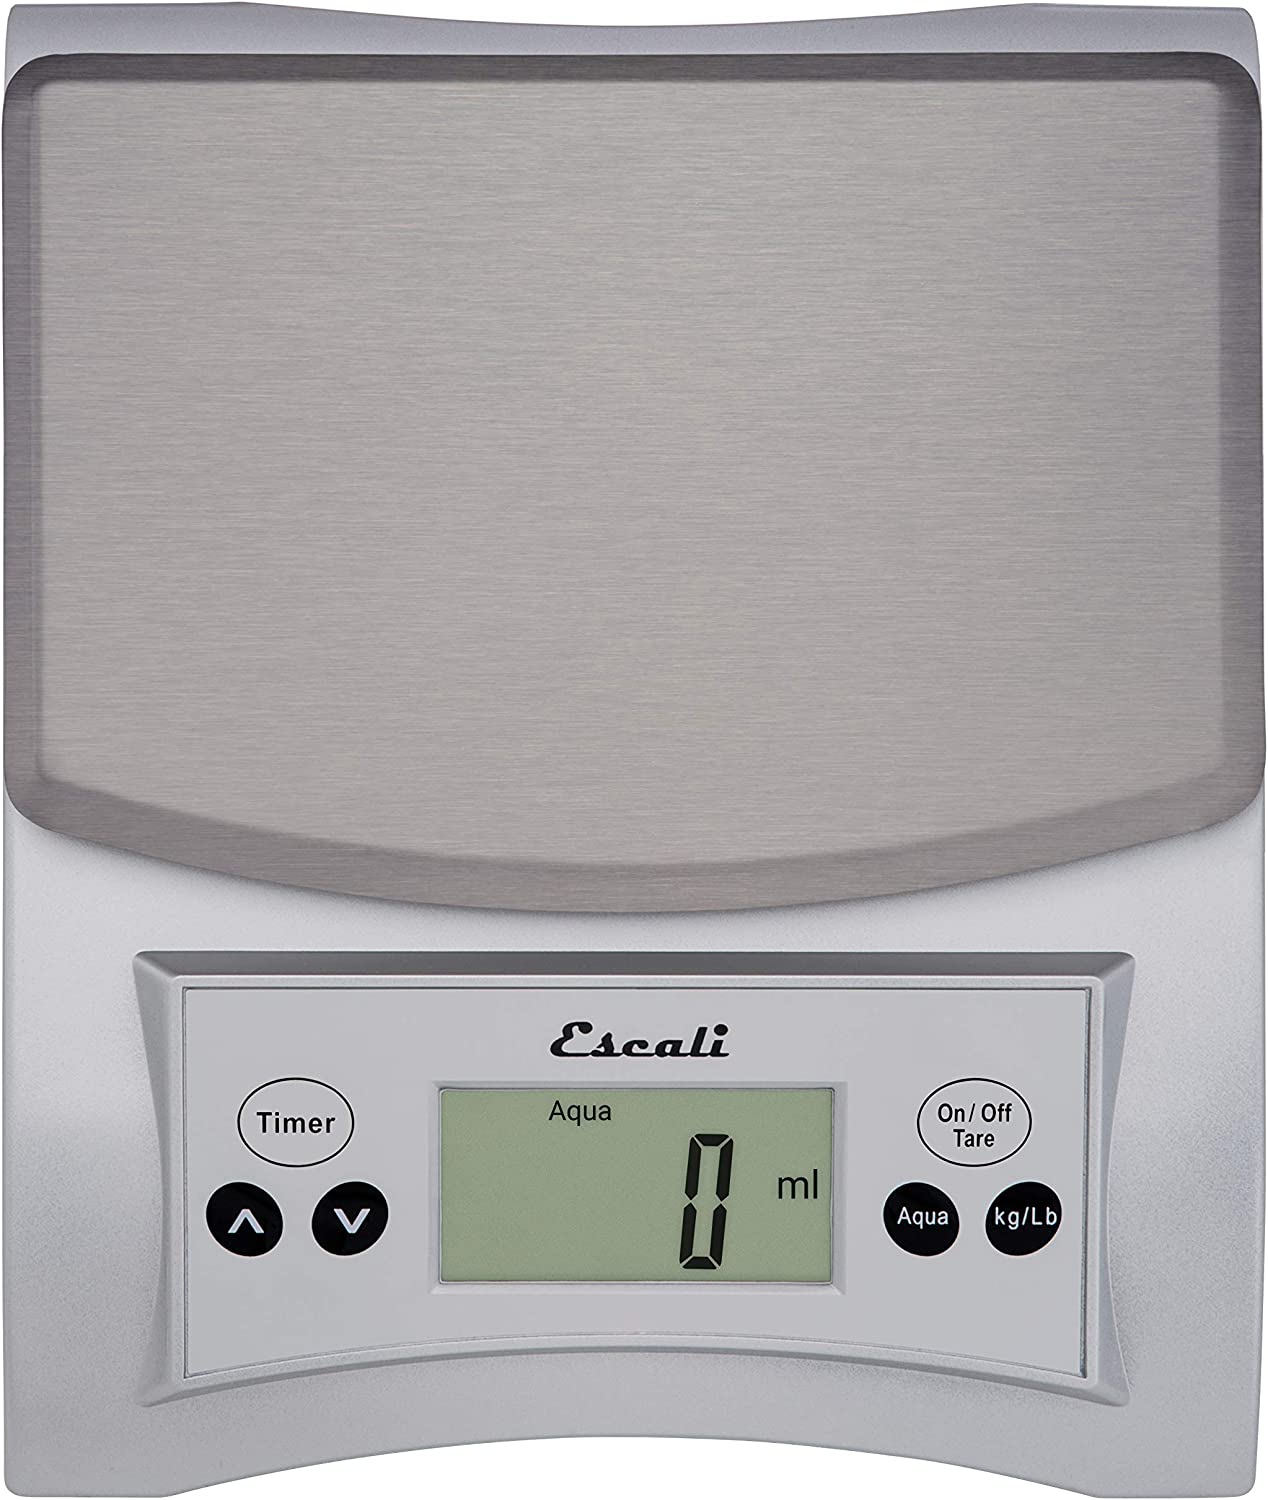 Escali Aqua A115S Scale for Liquids, Measures Specific Garvity, Removable Stainless Steel Platform, Built in Timer, Digital LCD Display, 11lb Capacity, Silver Grey